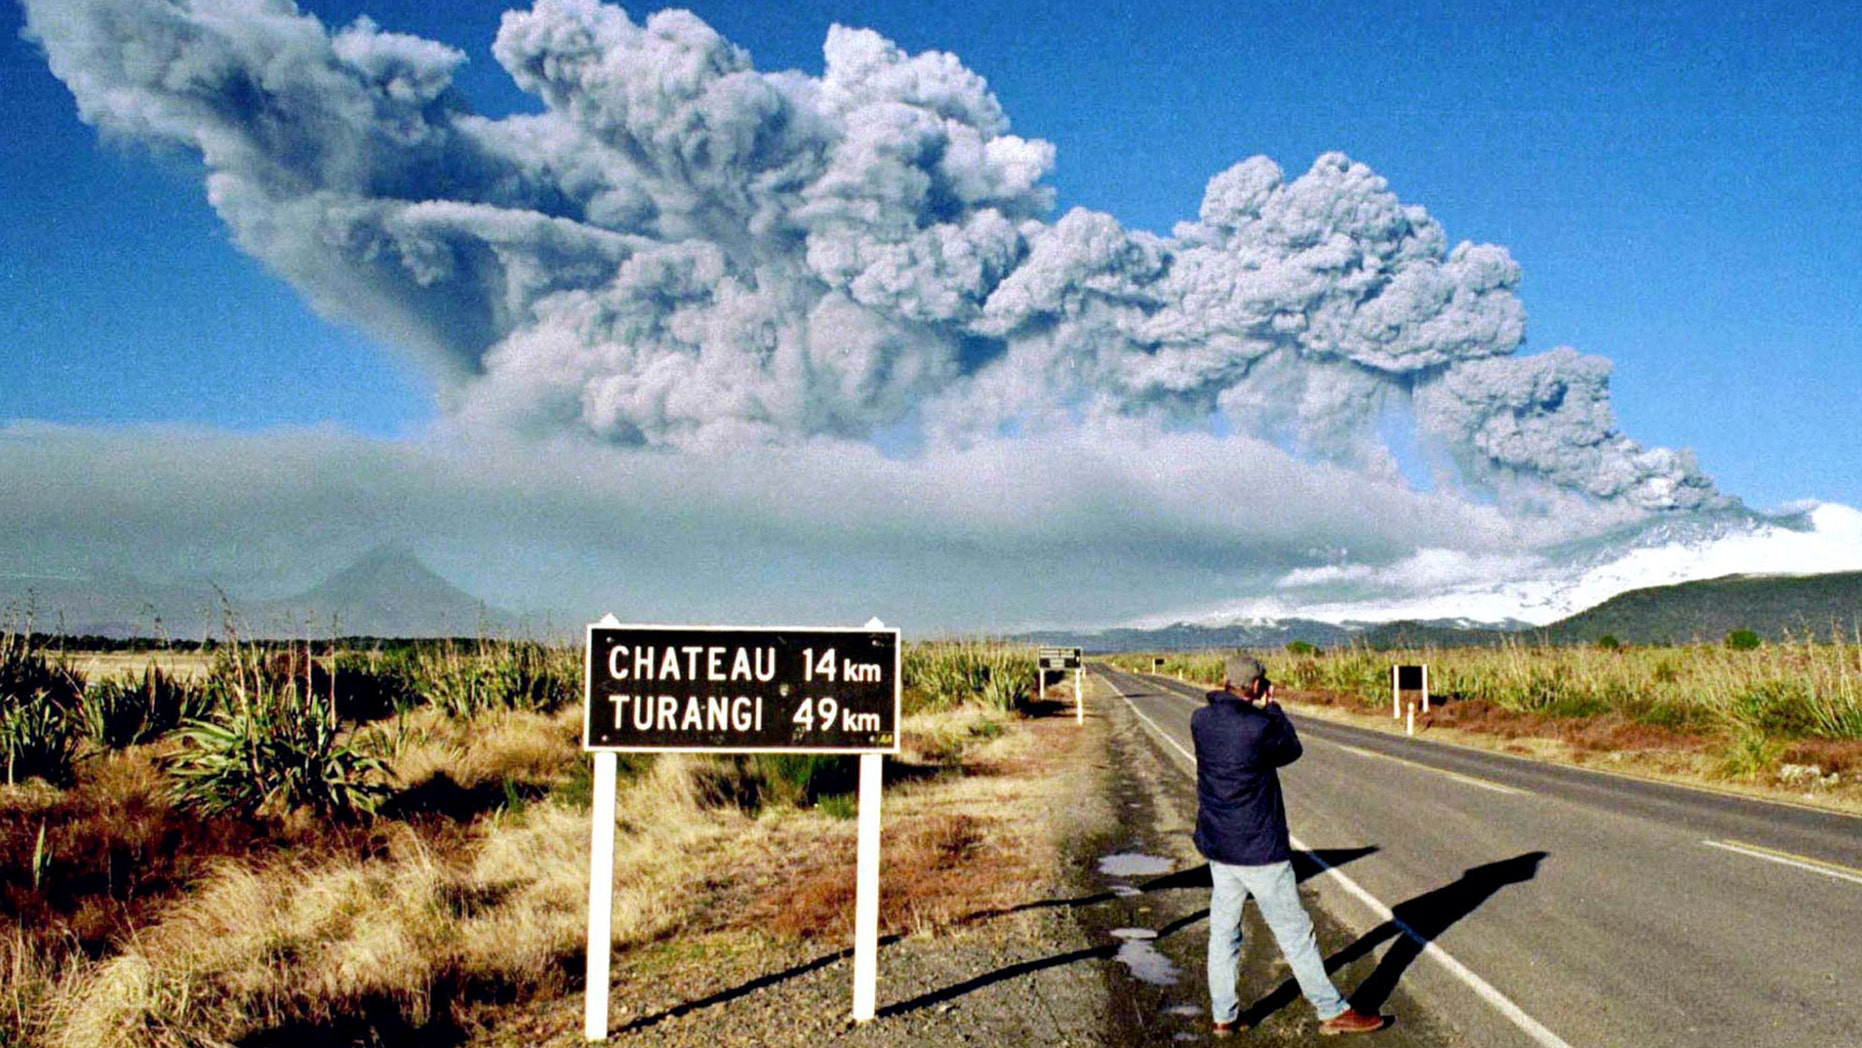 File photo: A tourist takes pictures of Mount Ruapehu as it erupts on June 18, 1996 in Tongariro National Park on the central North Island of New Zealand. (REUTERS/Stringer)